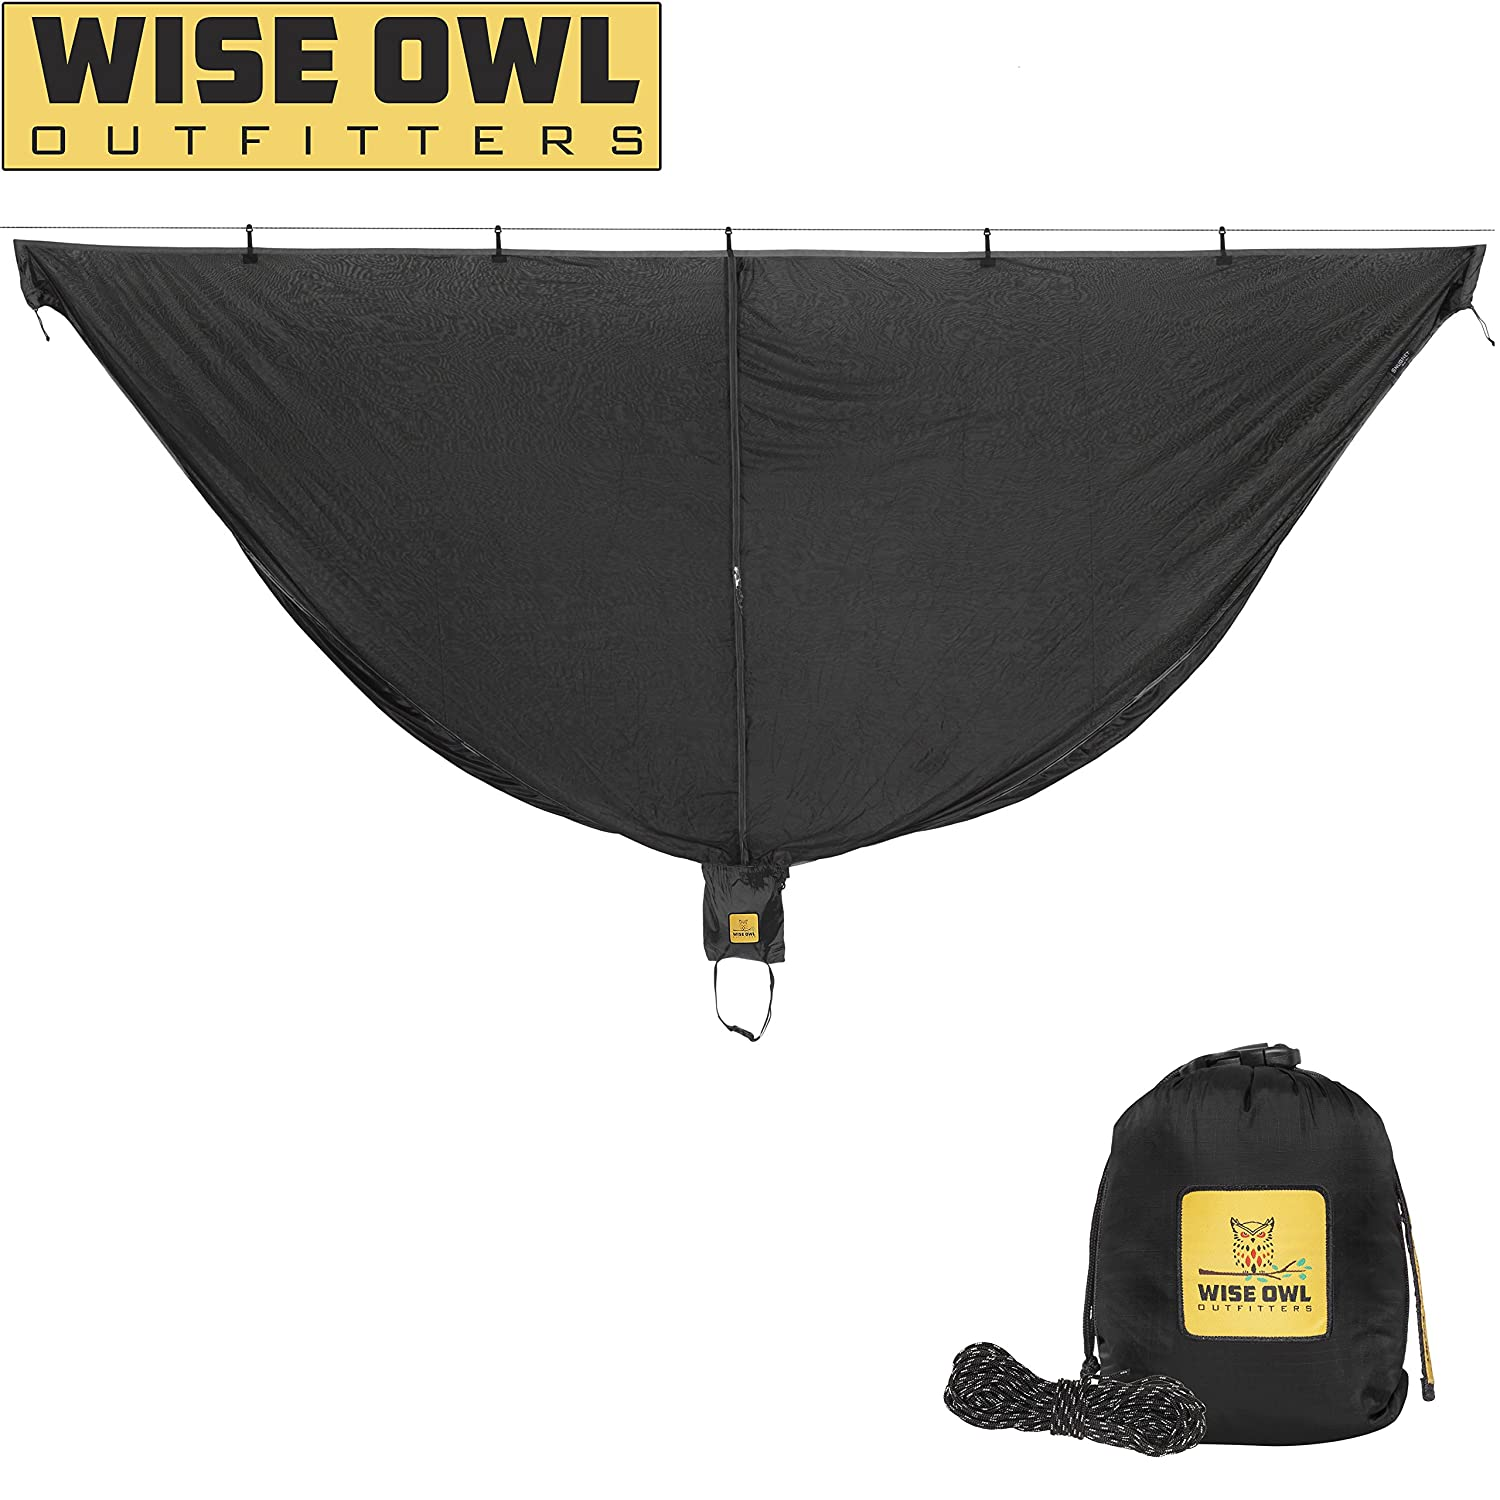 Wise Owl Outfitters Hammock Bug Net – The SnugNet Mosquito Net for Bugs – Best Premium Quality Mesh Netting is a Guardian for Mosquitos, No See Um and Insects – Perfect Accessory for Your Hammocks